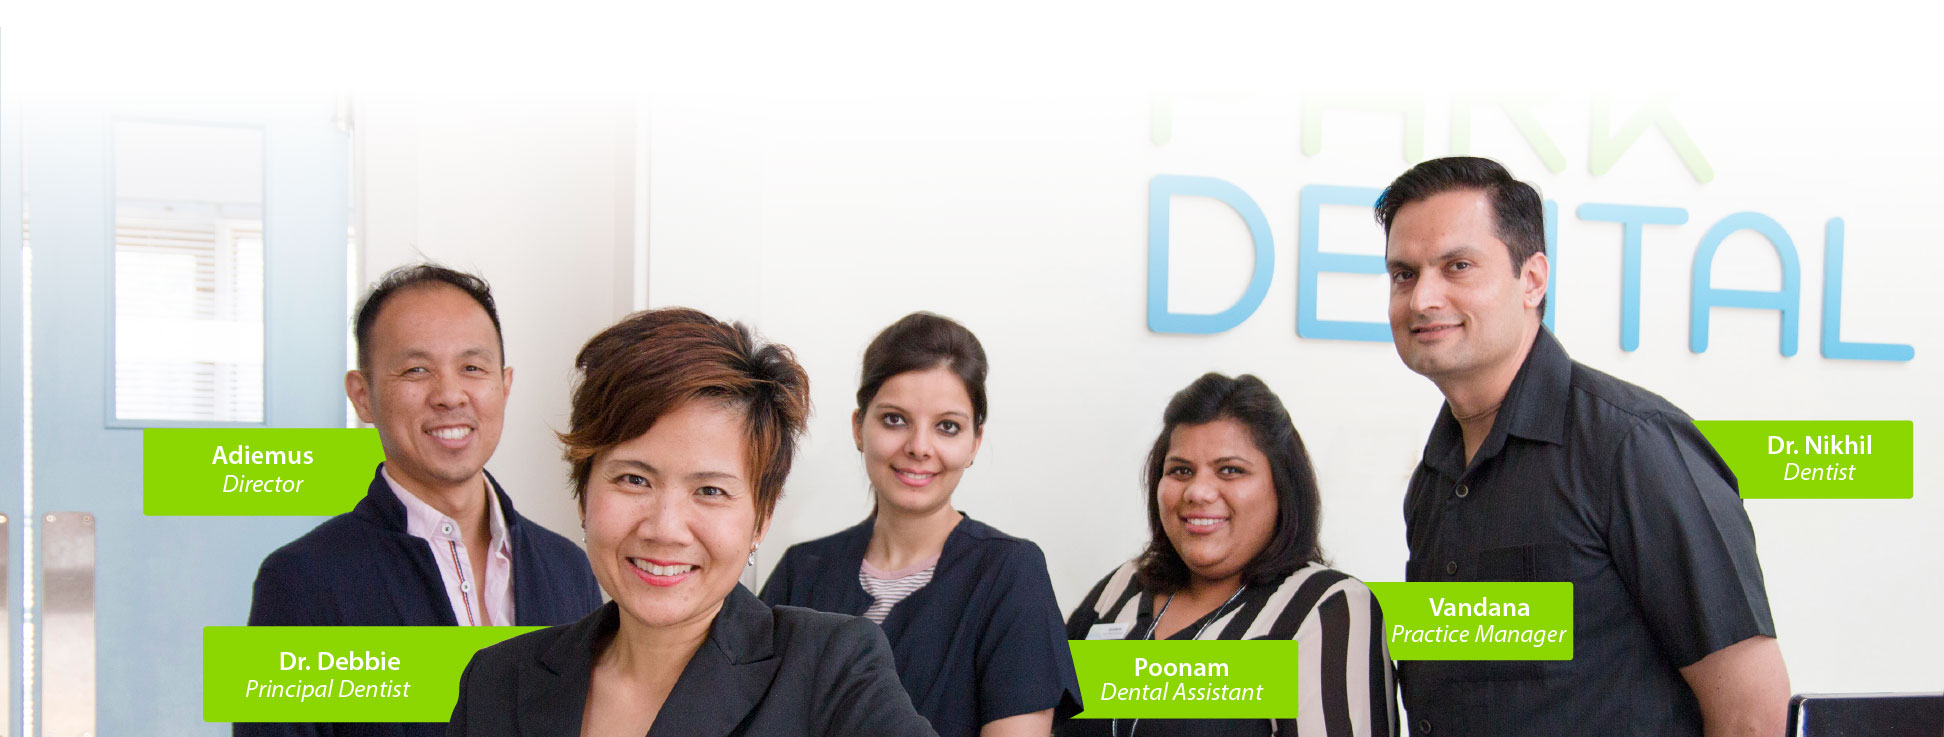 royal park dental our team page image no title 3